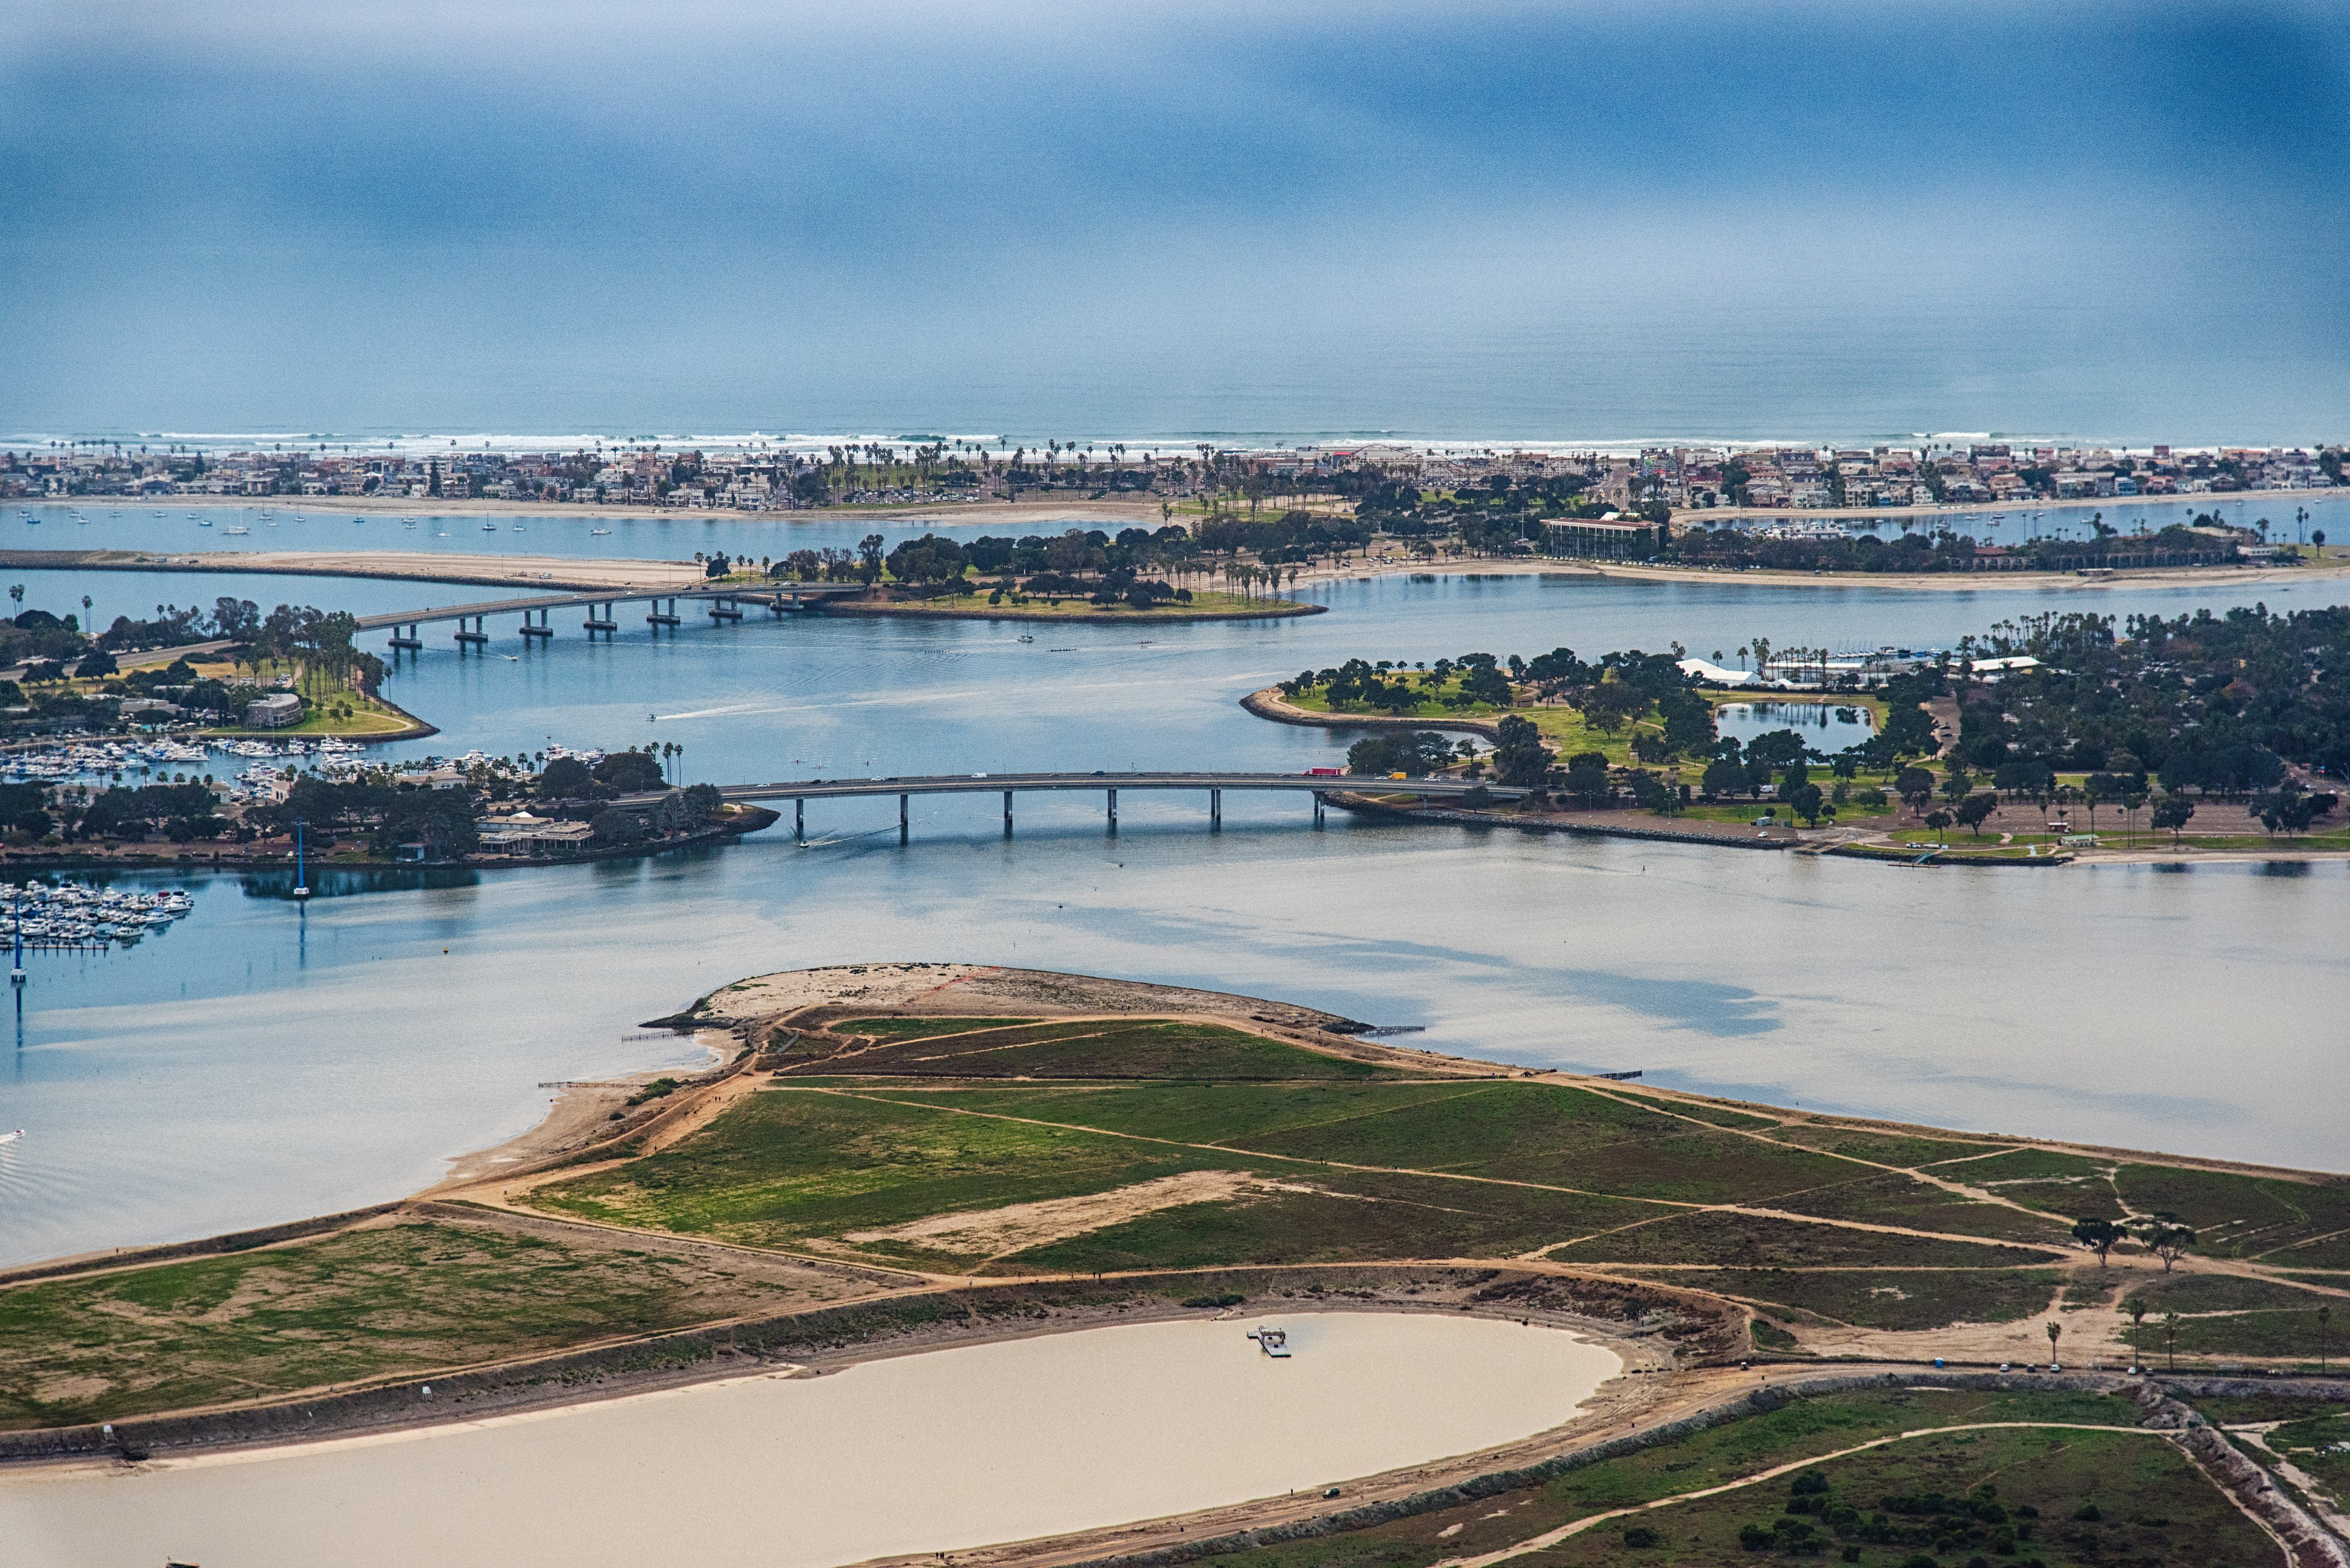 40 Best Things to Do at Mission Bay San Diego - La Jolla Mom